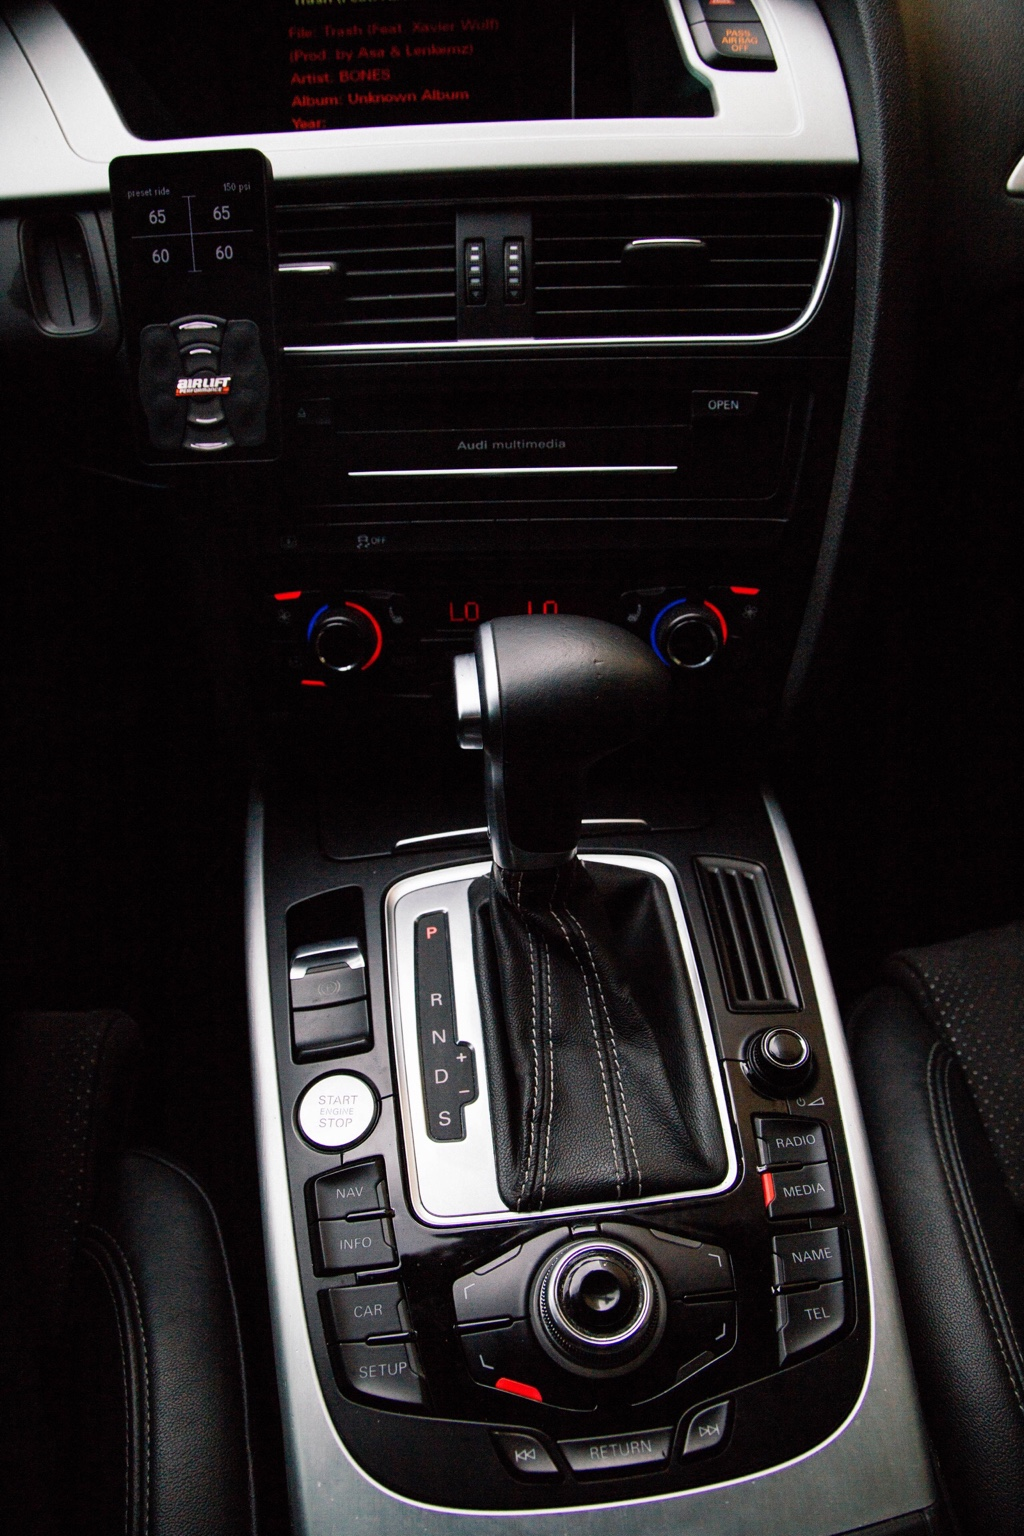 Official B8 Air Ride thread* [Archive] - Page 4 - Audizine Forums